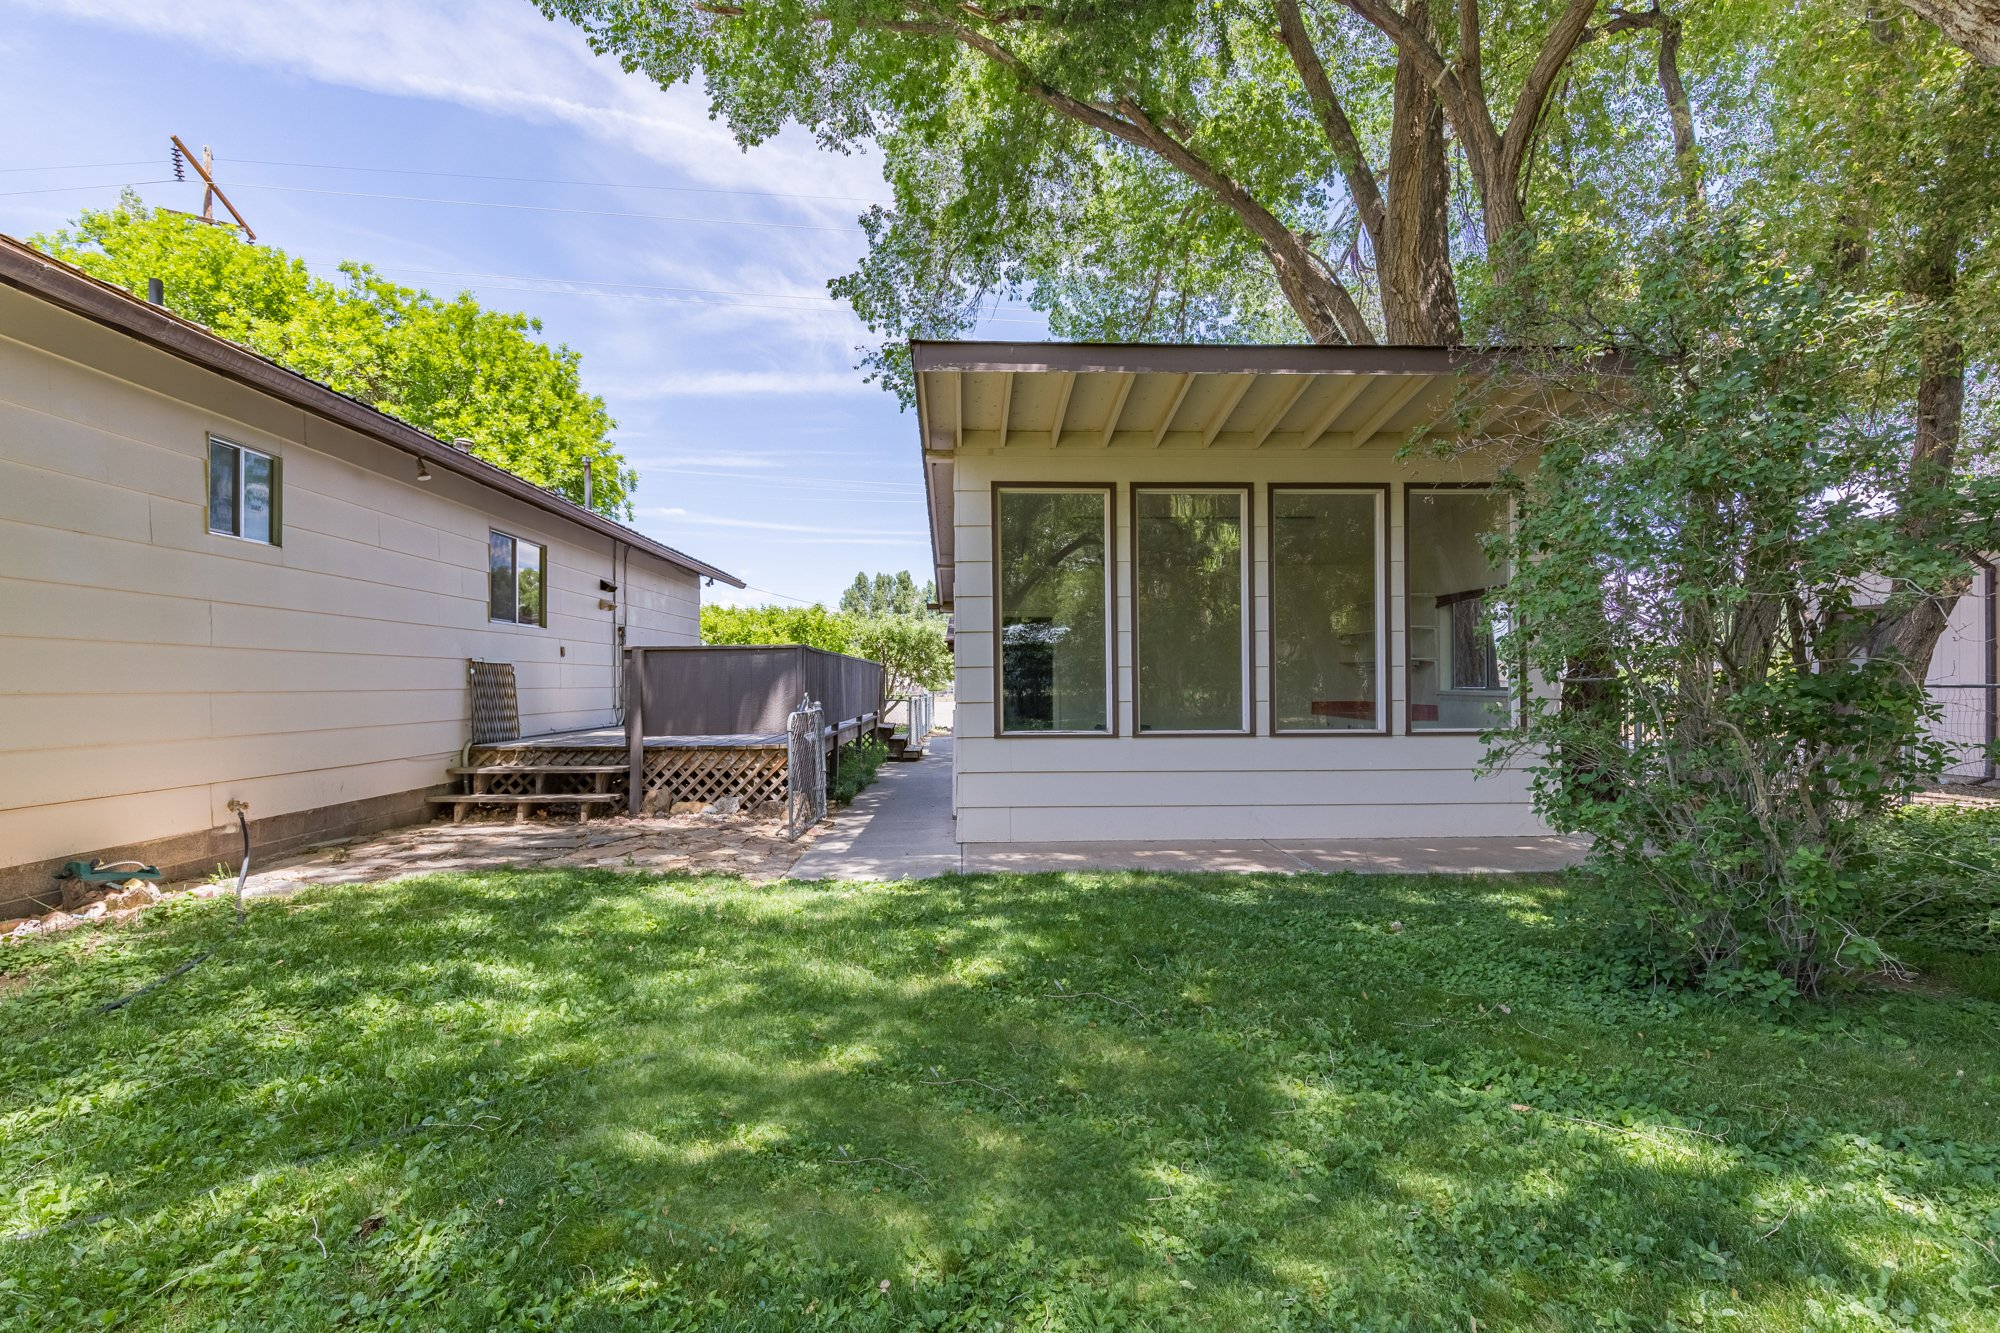 Back Yard with Shed - 418 6400 Rd Montrose, CO 81403 - Atha Team Realty